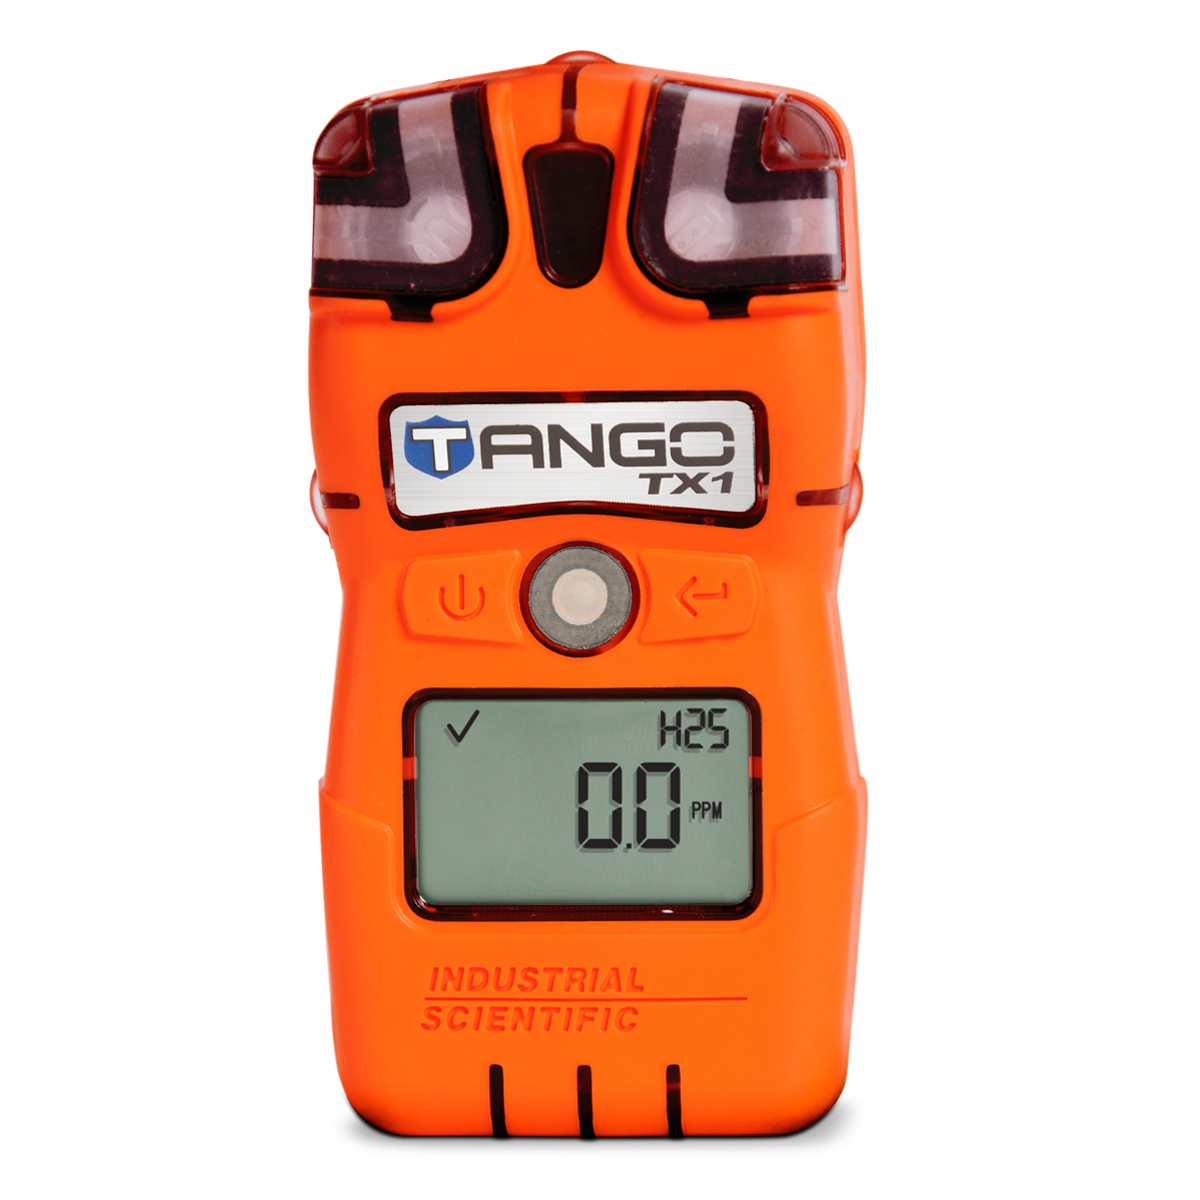 product image for tango tx1 single-gas detector